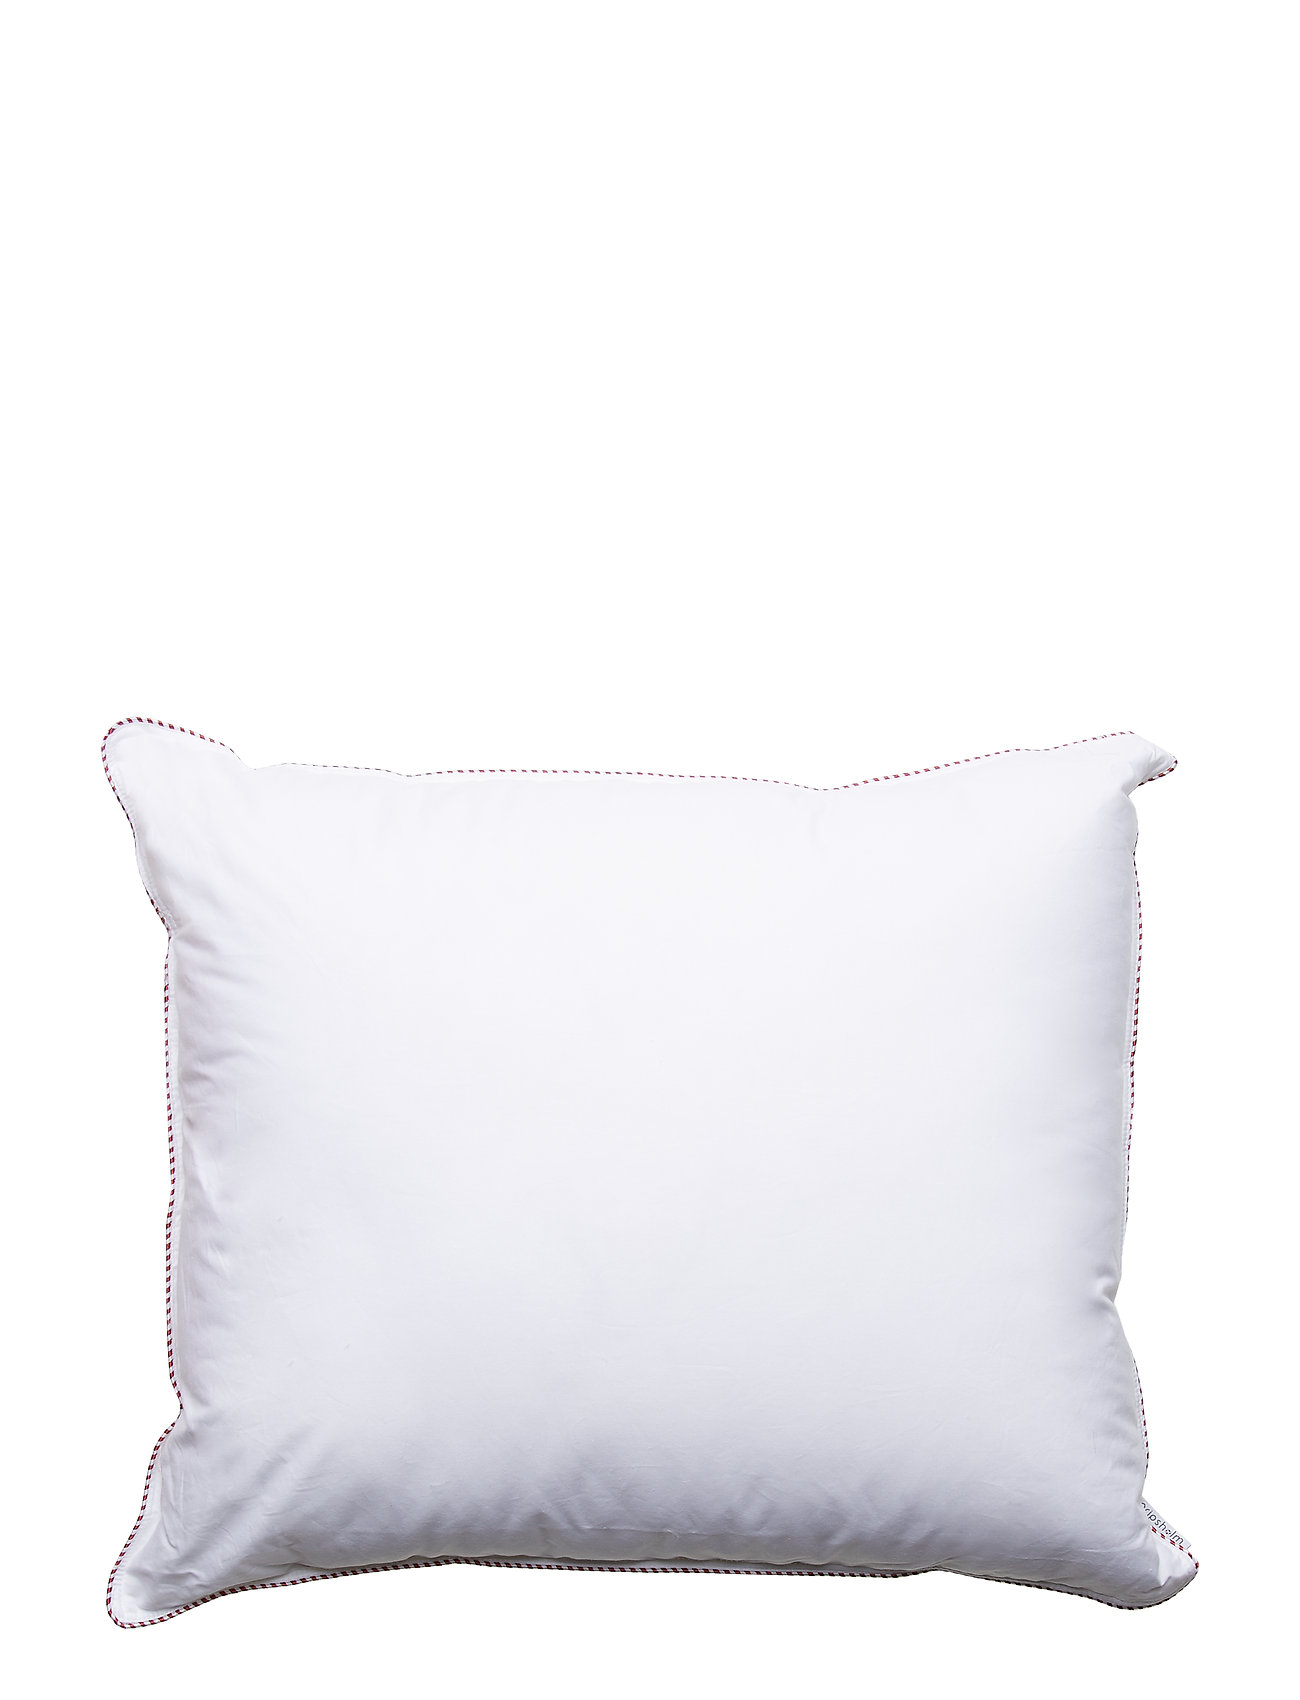 Gripsholm PILLOW NELSON HIGH - WHITE